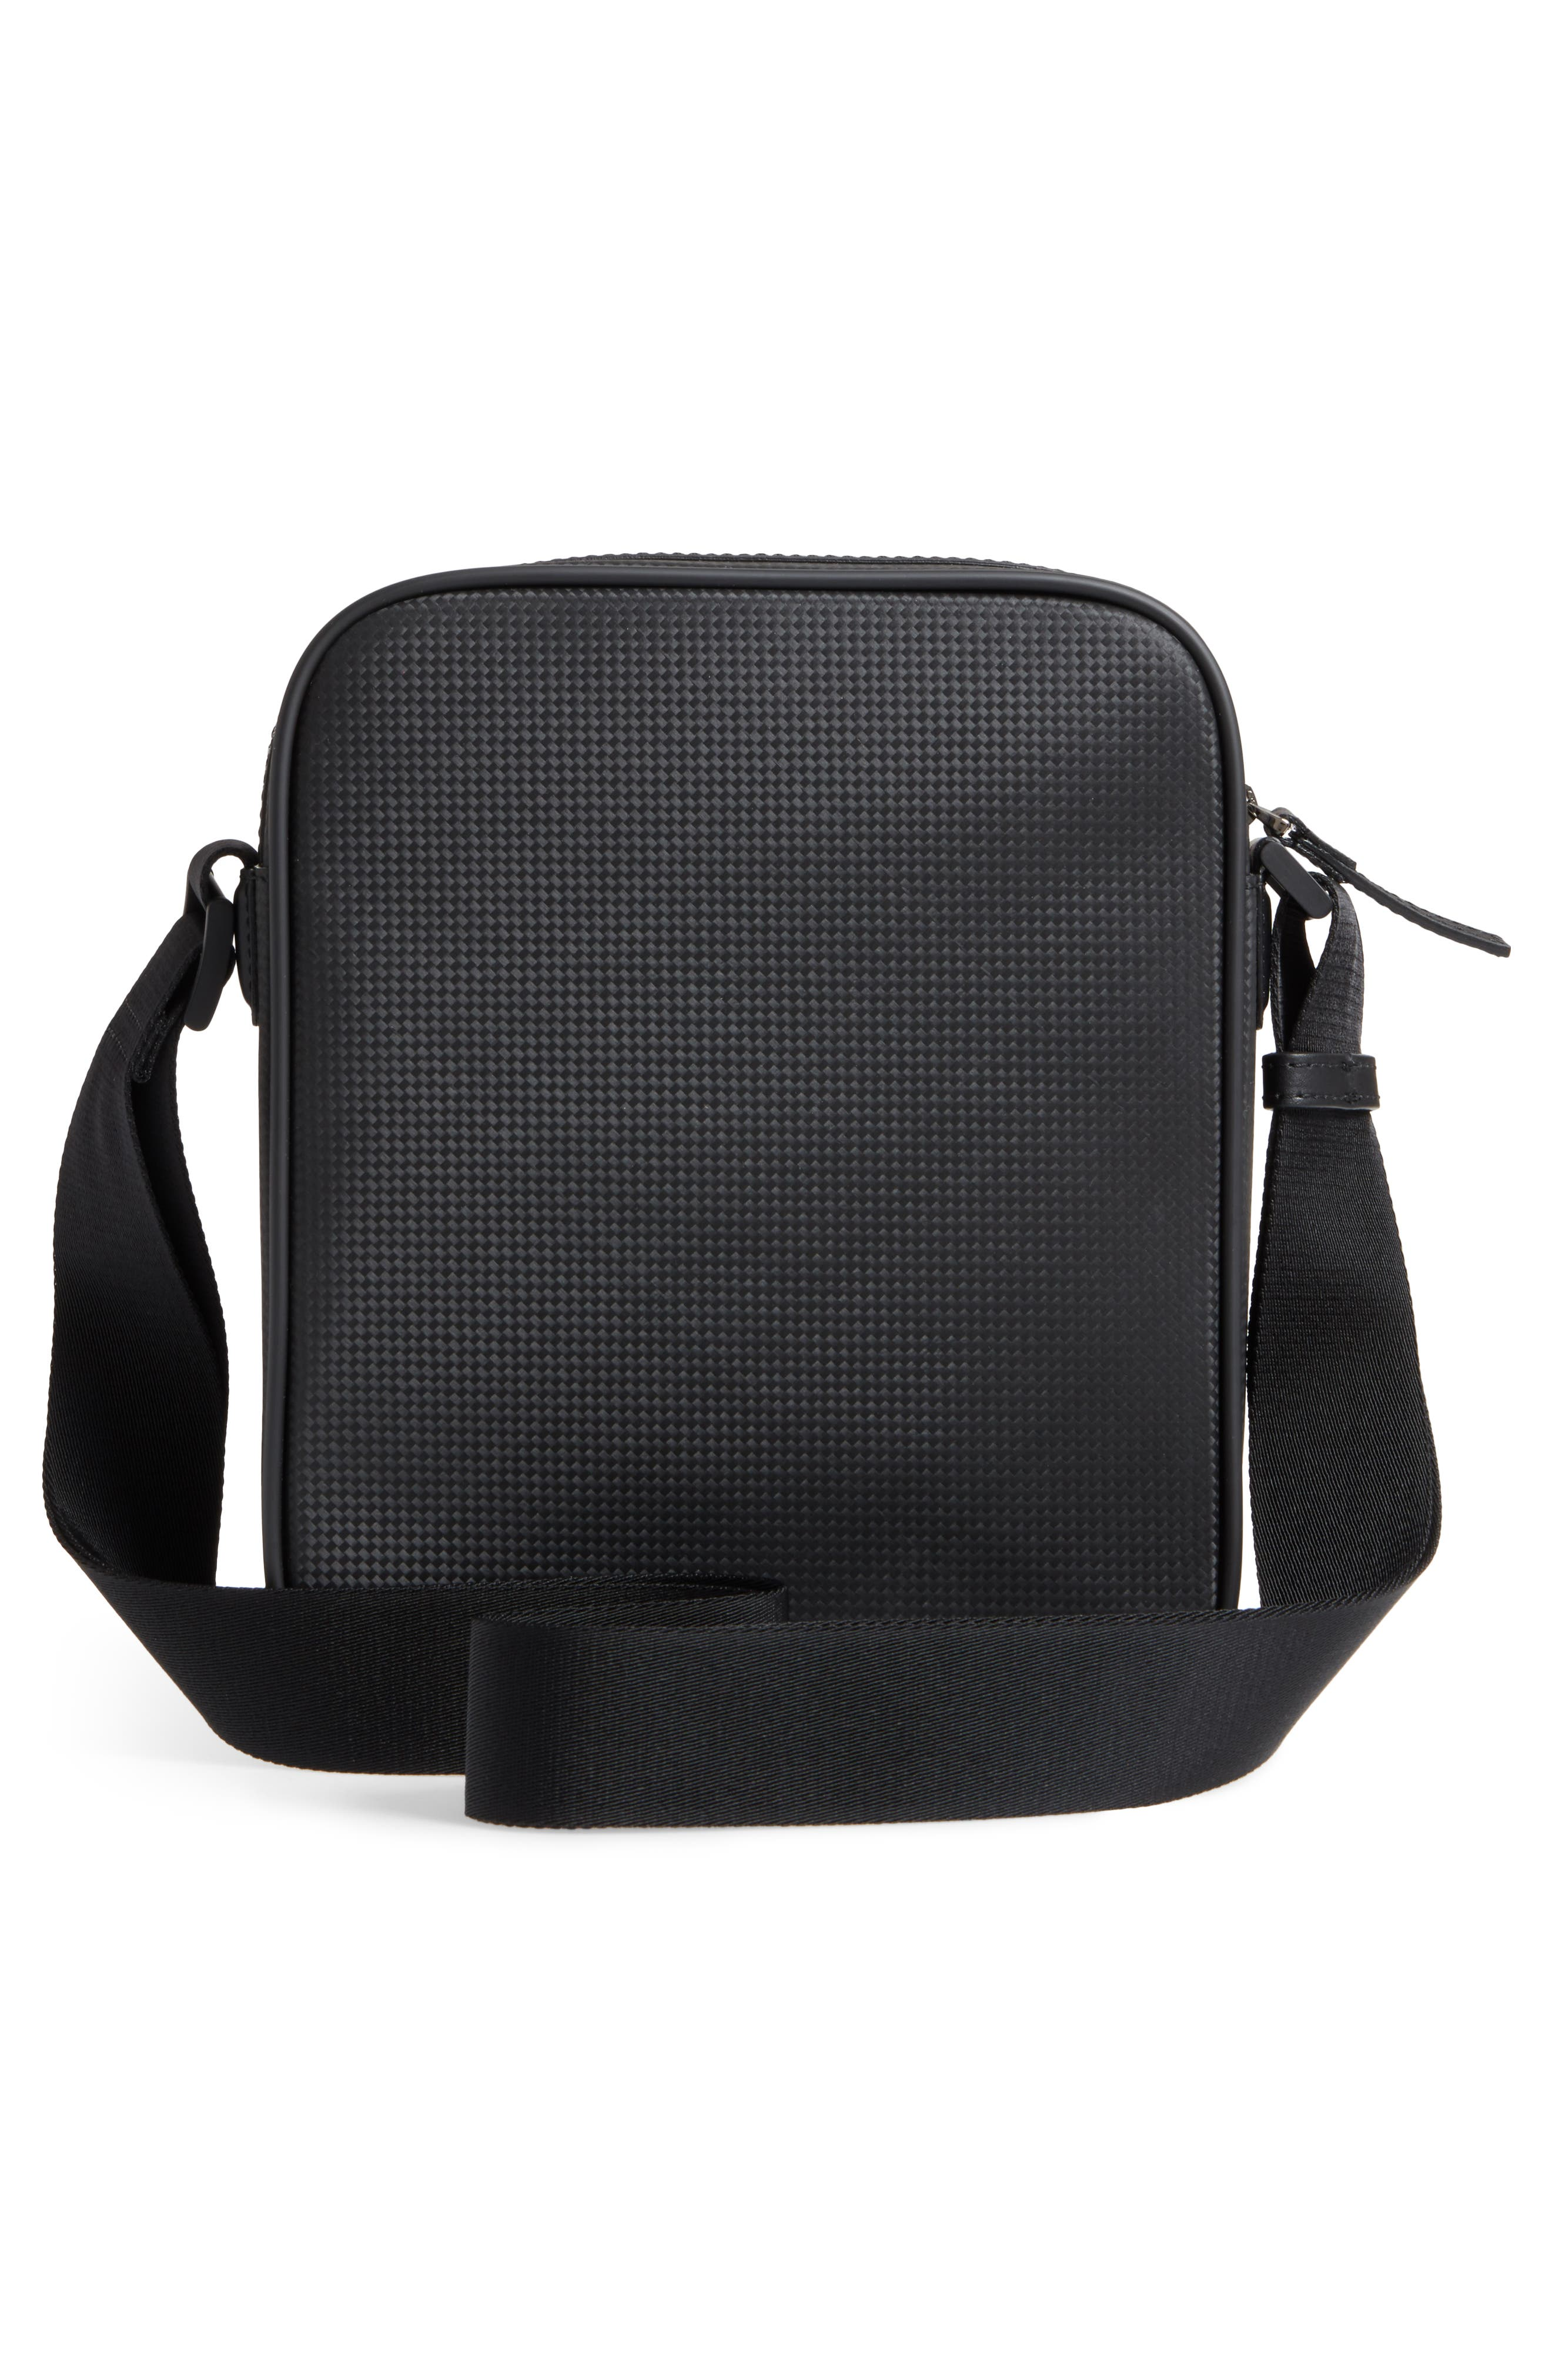 Extreme Reporter Leather Bag,                             Alternate thumbnail 3, color,                             BLACK